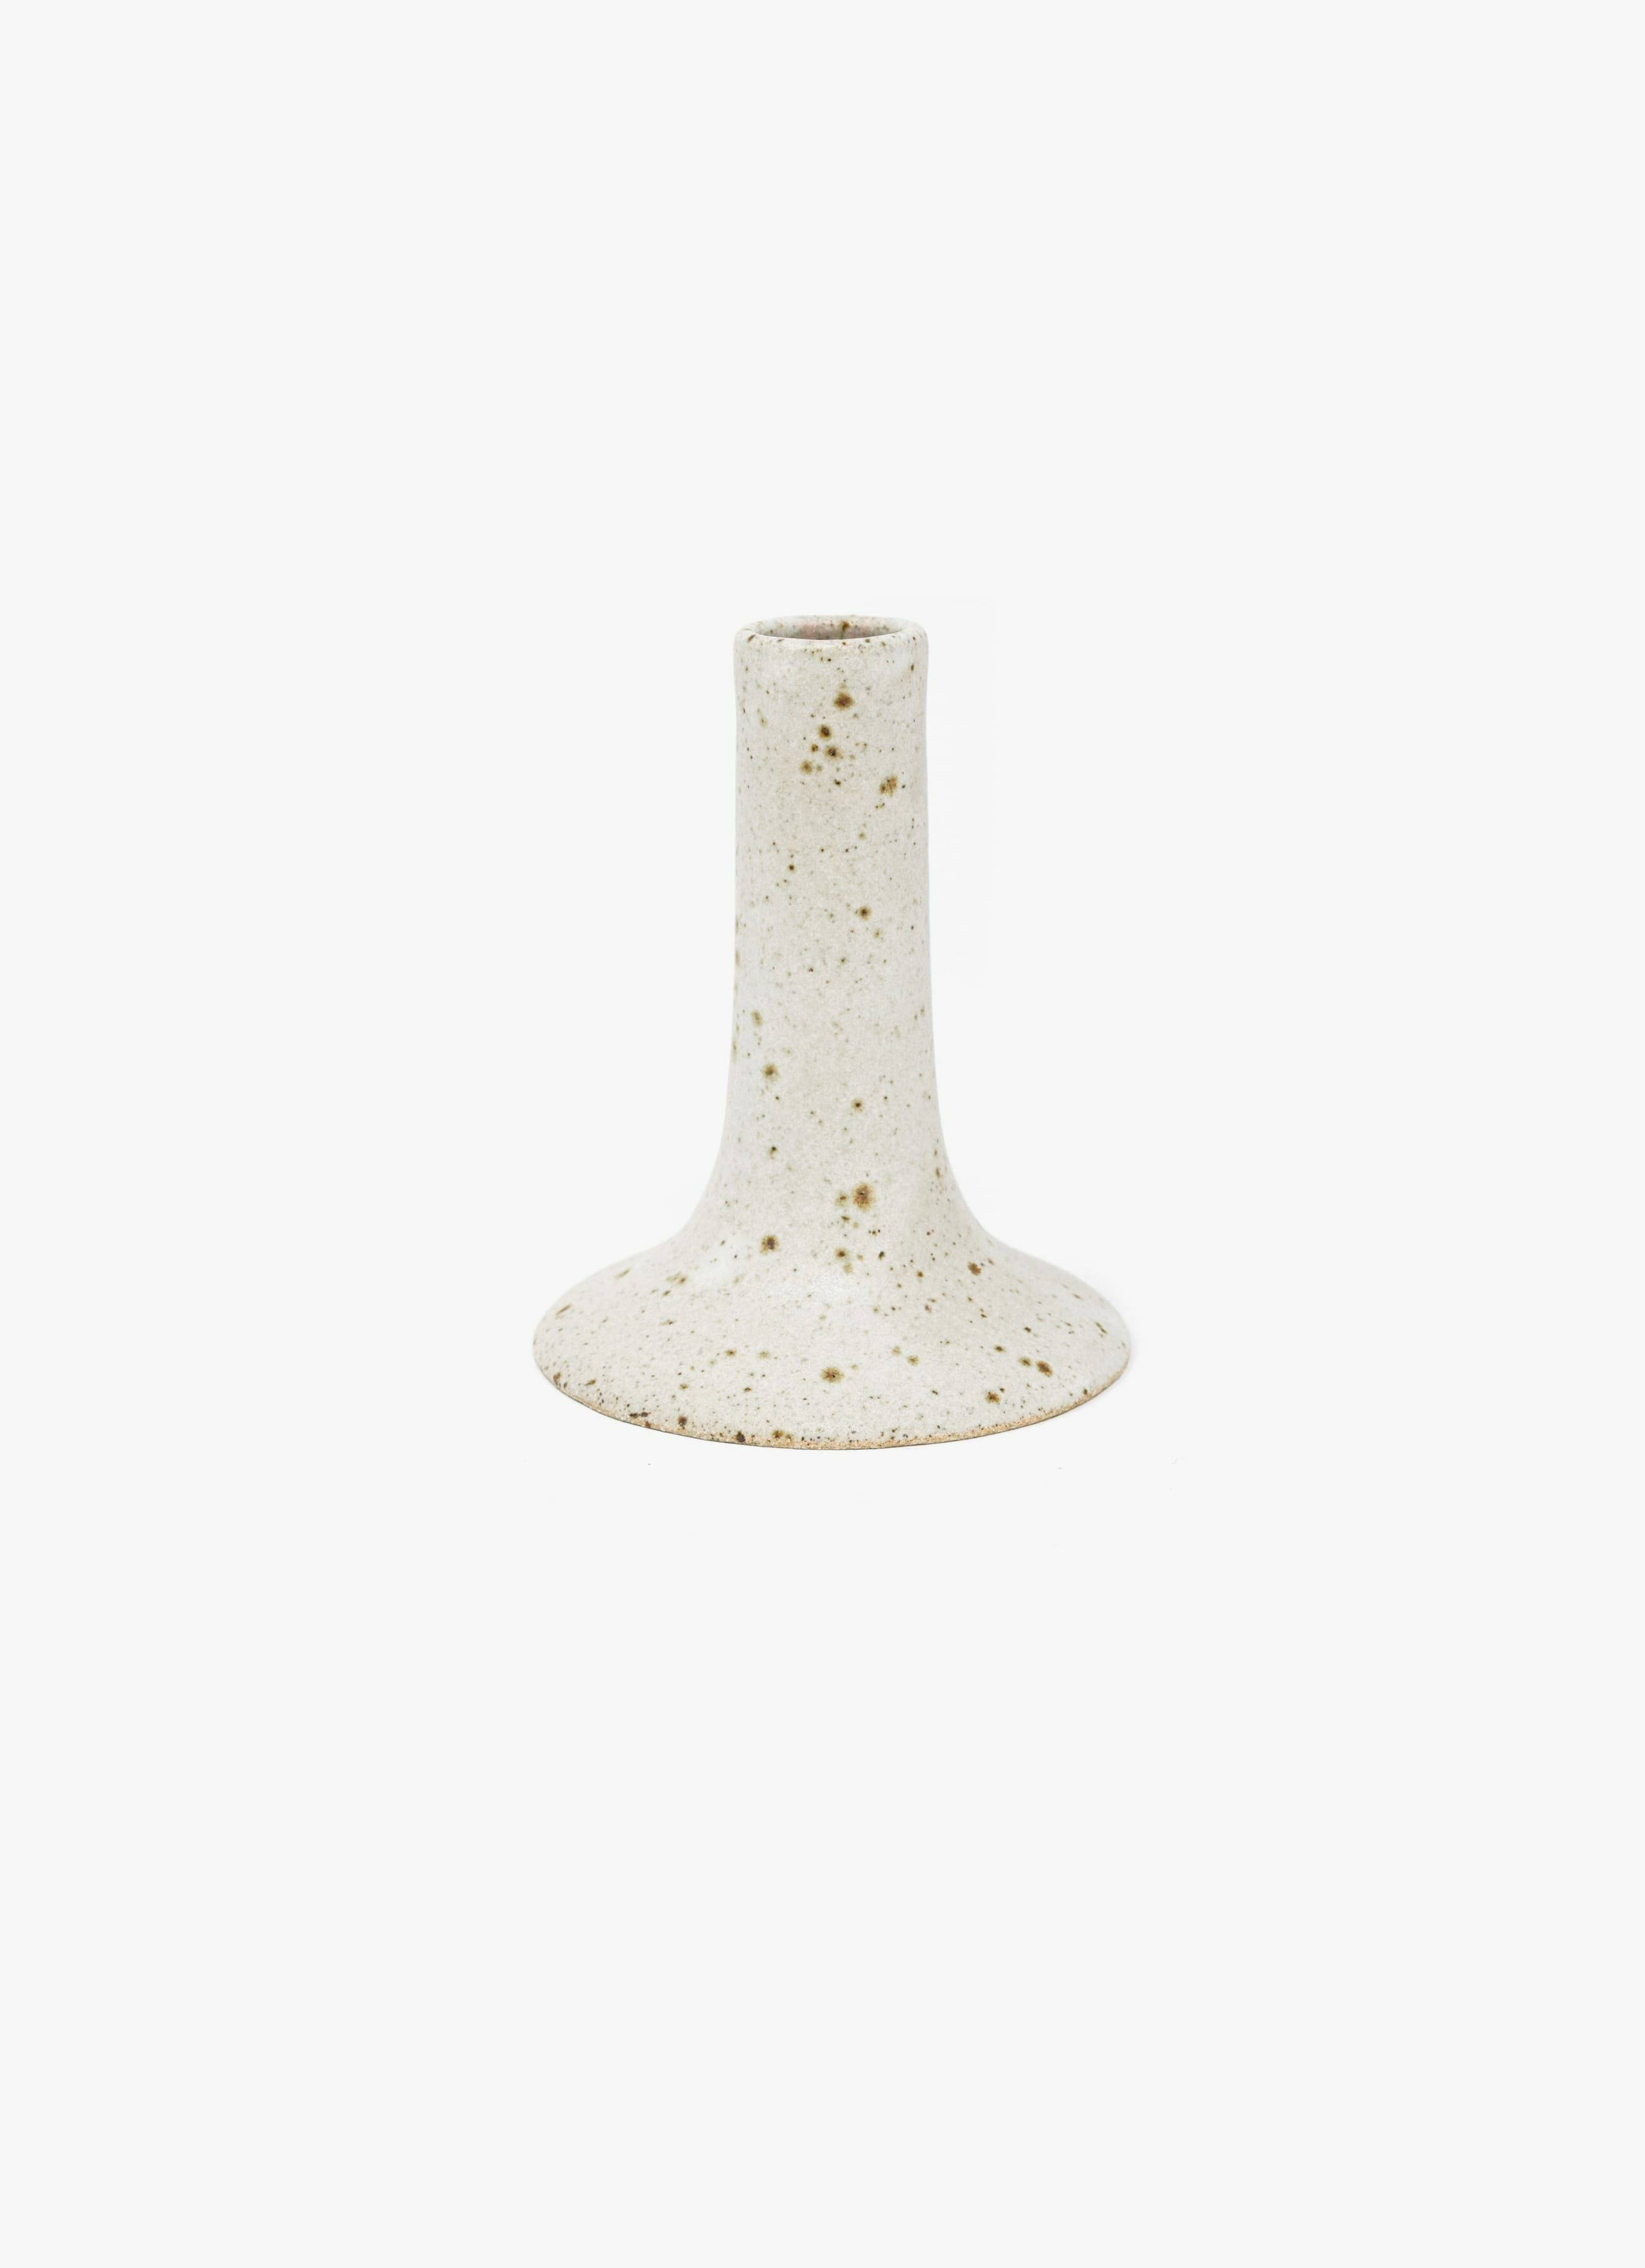 Viki Weiland - Handmade Stoneware - Candle Holder - tall